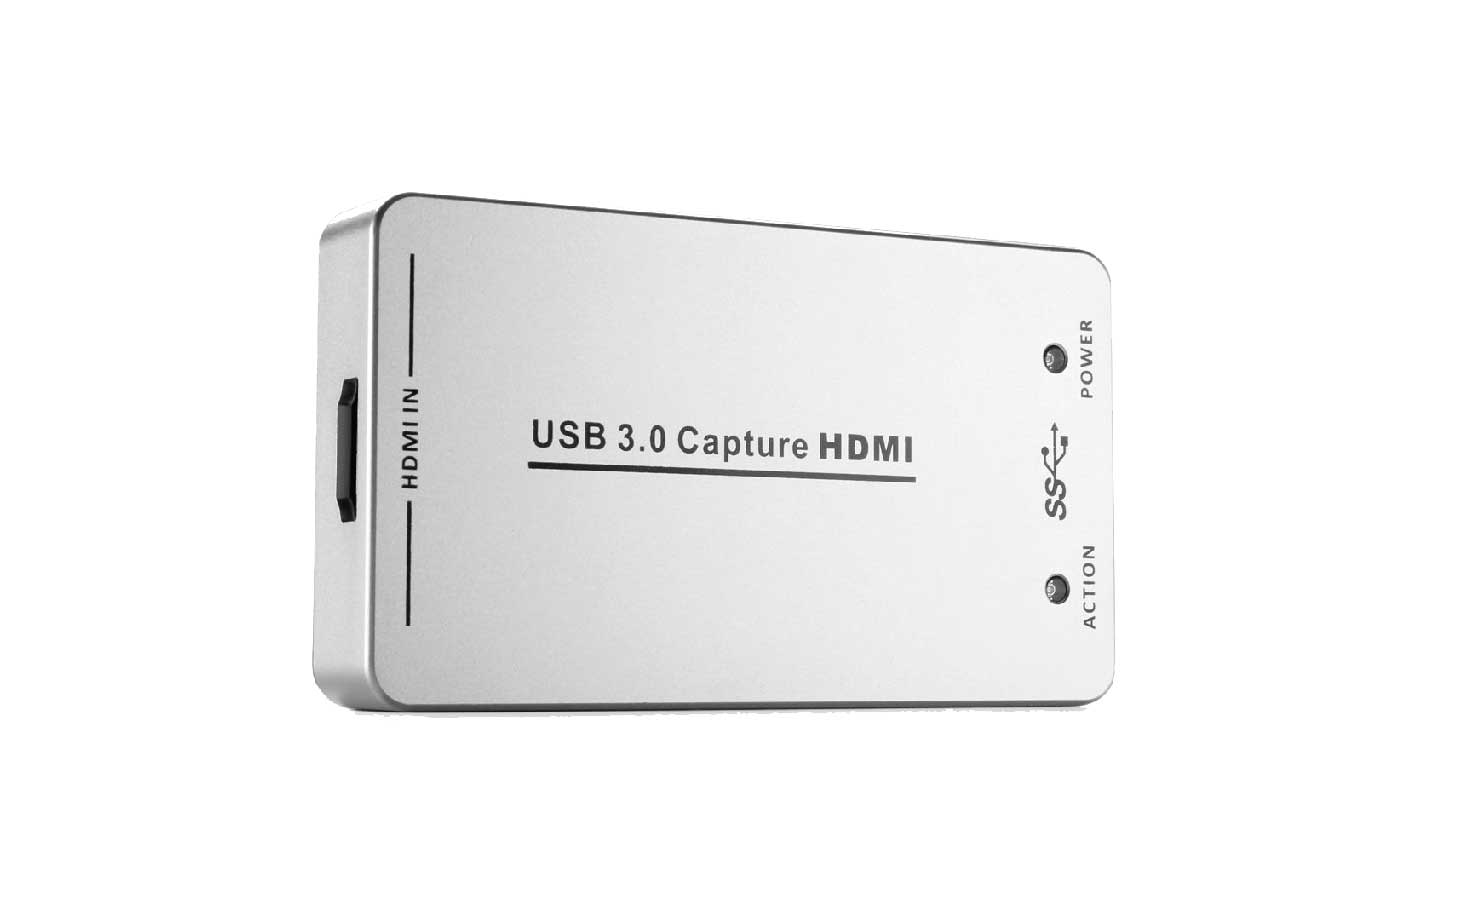 Capturadora de video dongle usb 3.0